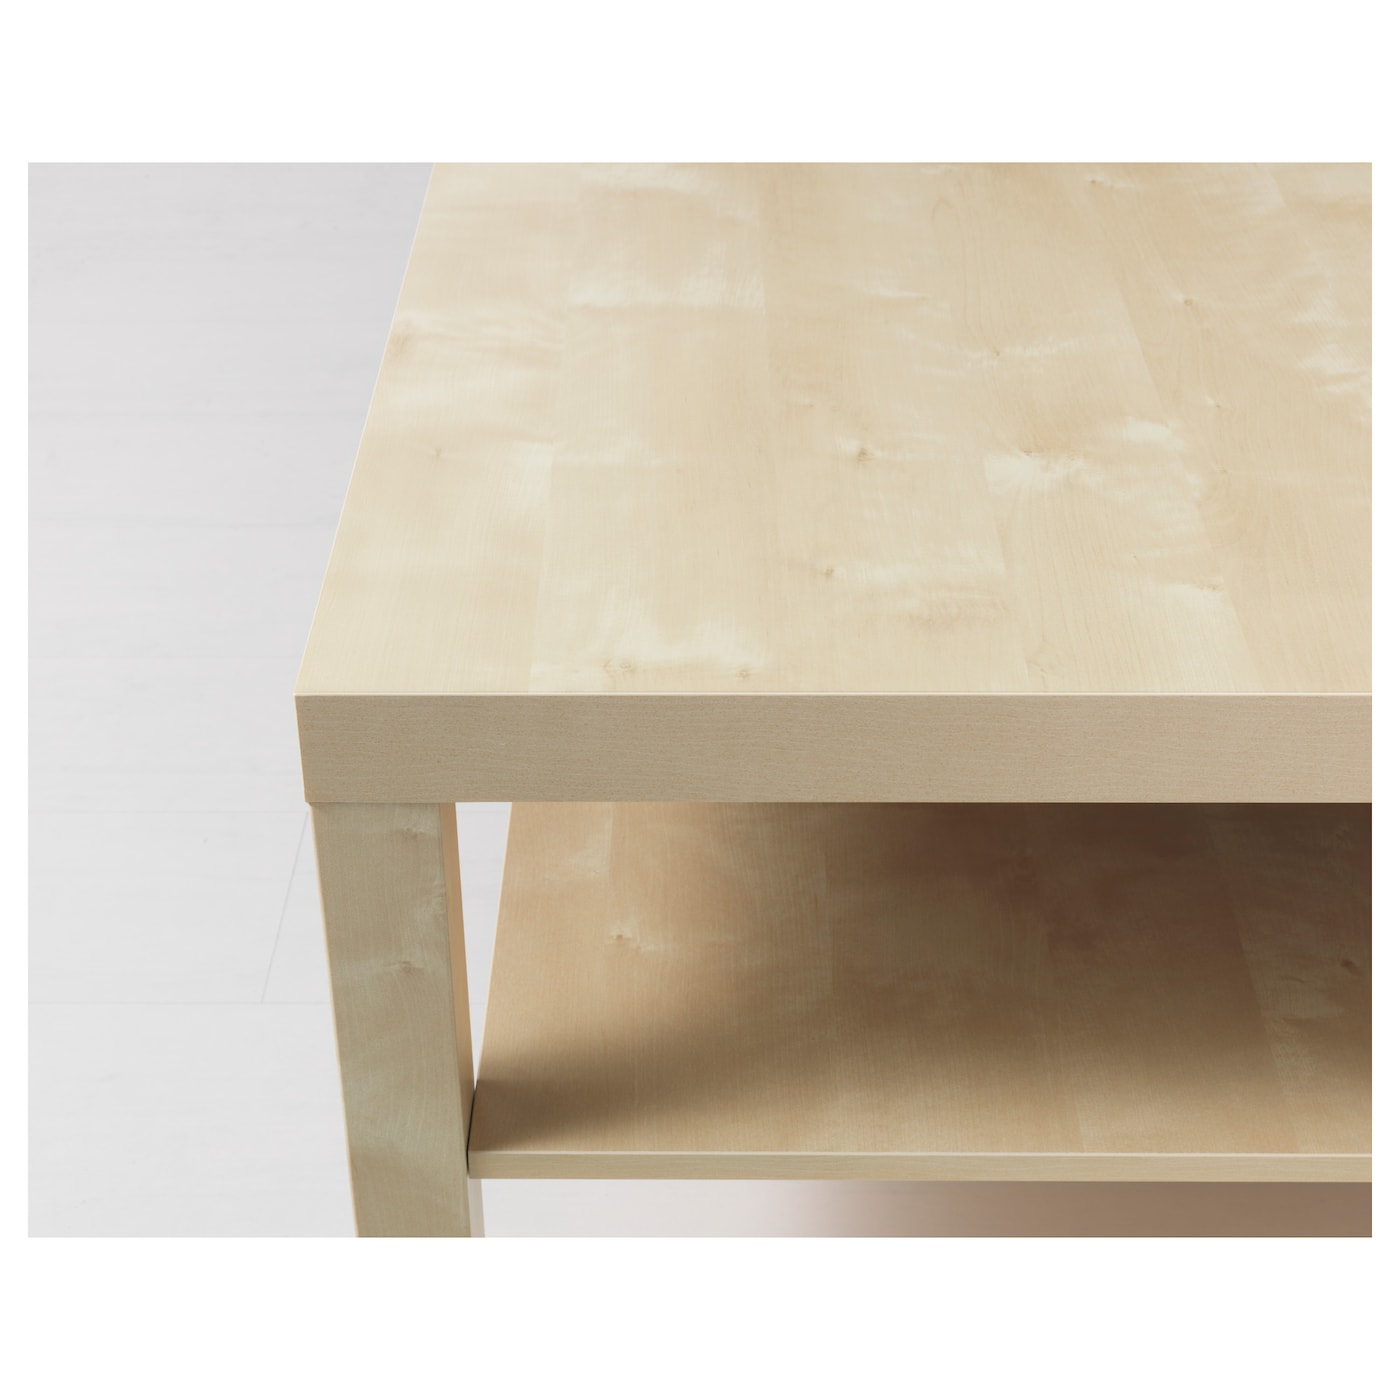 Lack coffee table birch effect 118x78 cm ikea for Table basse hauteur 55 cm